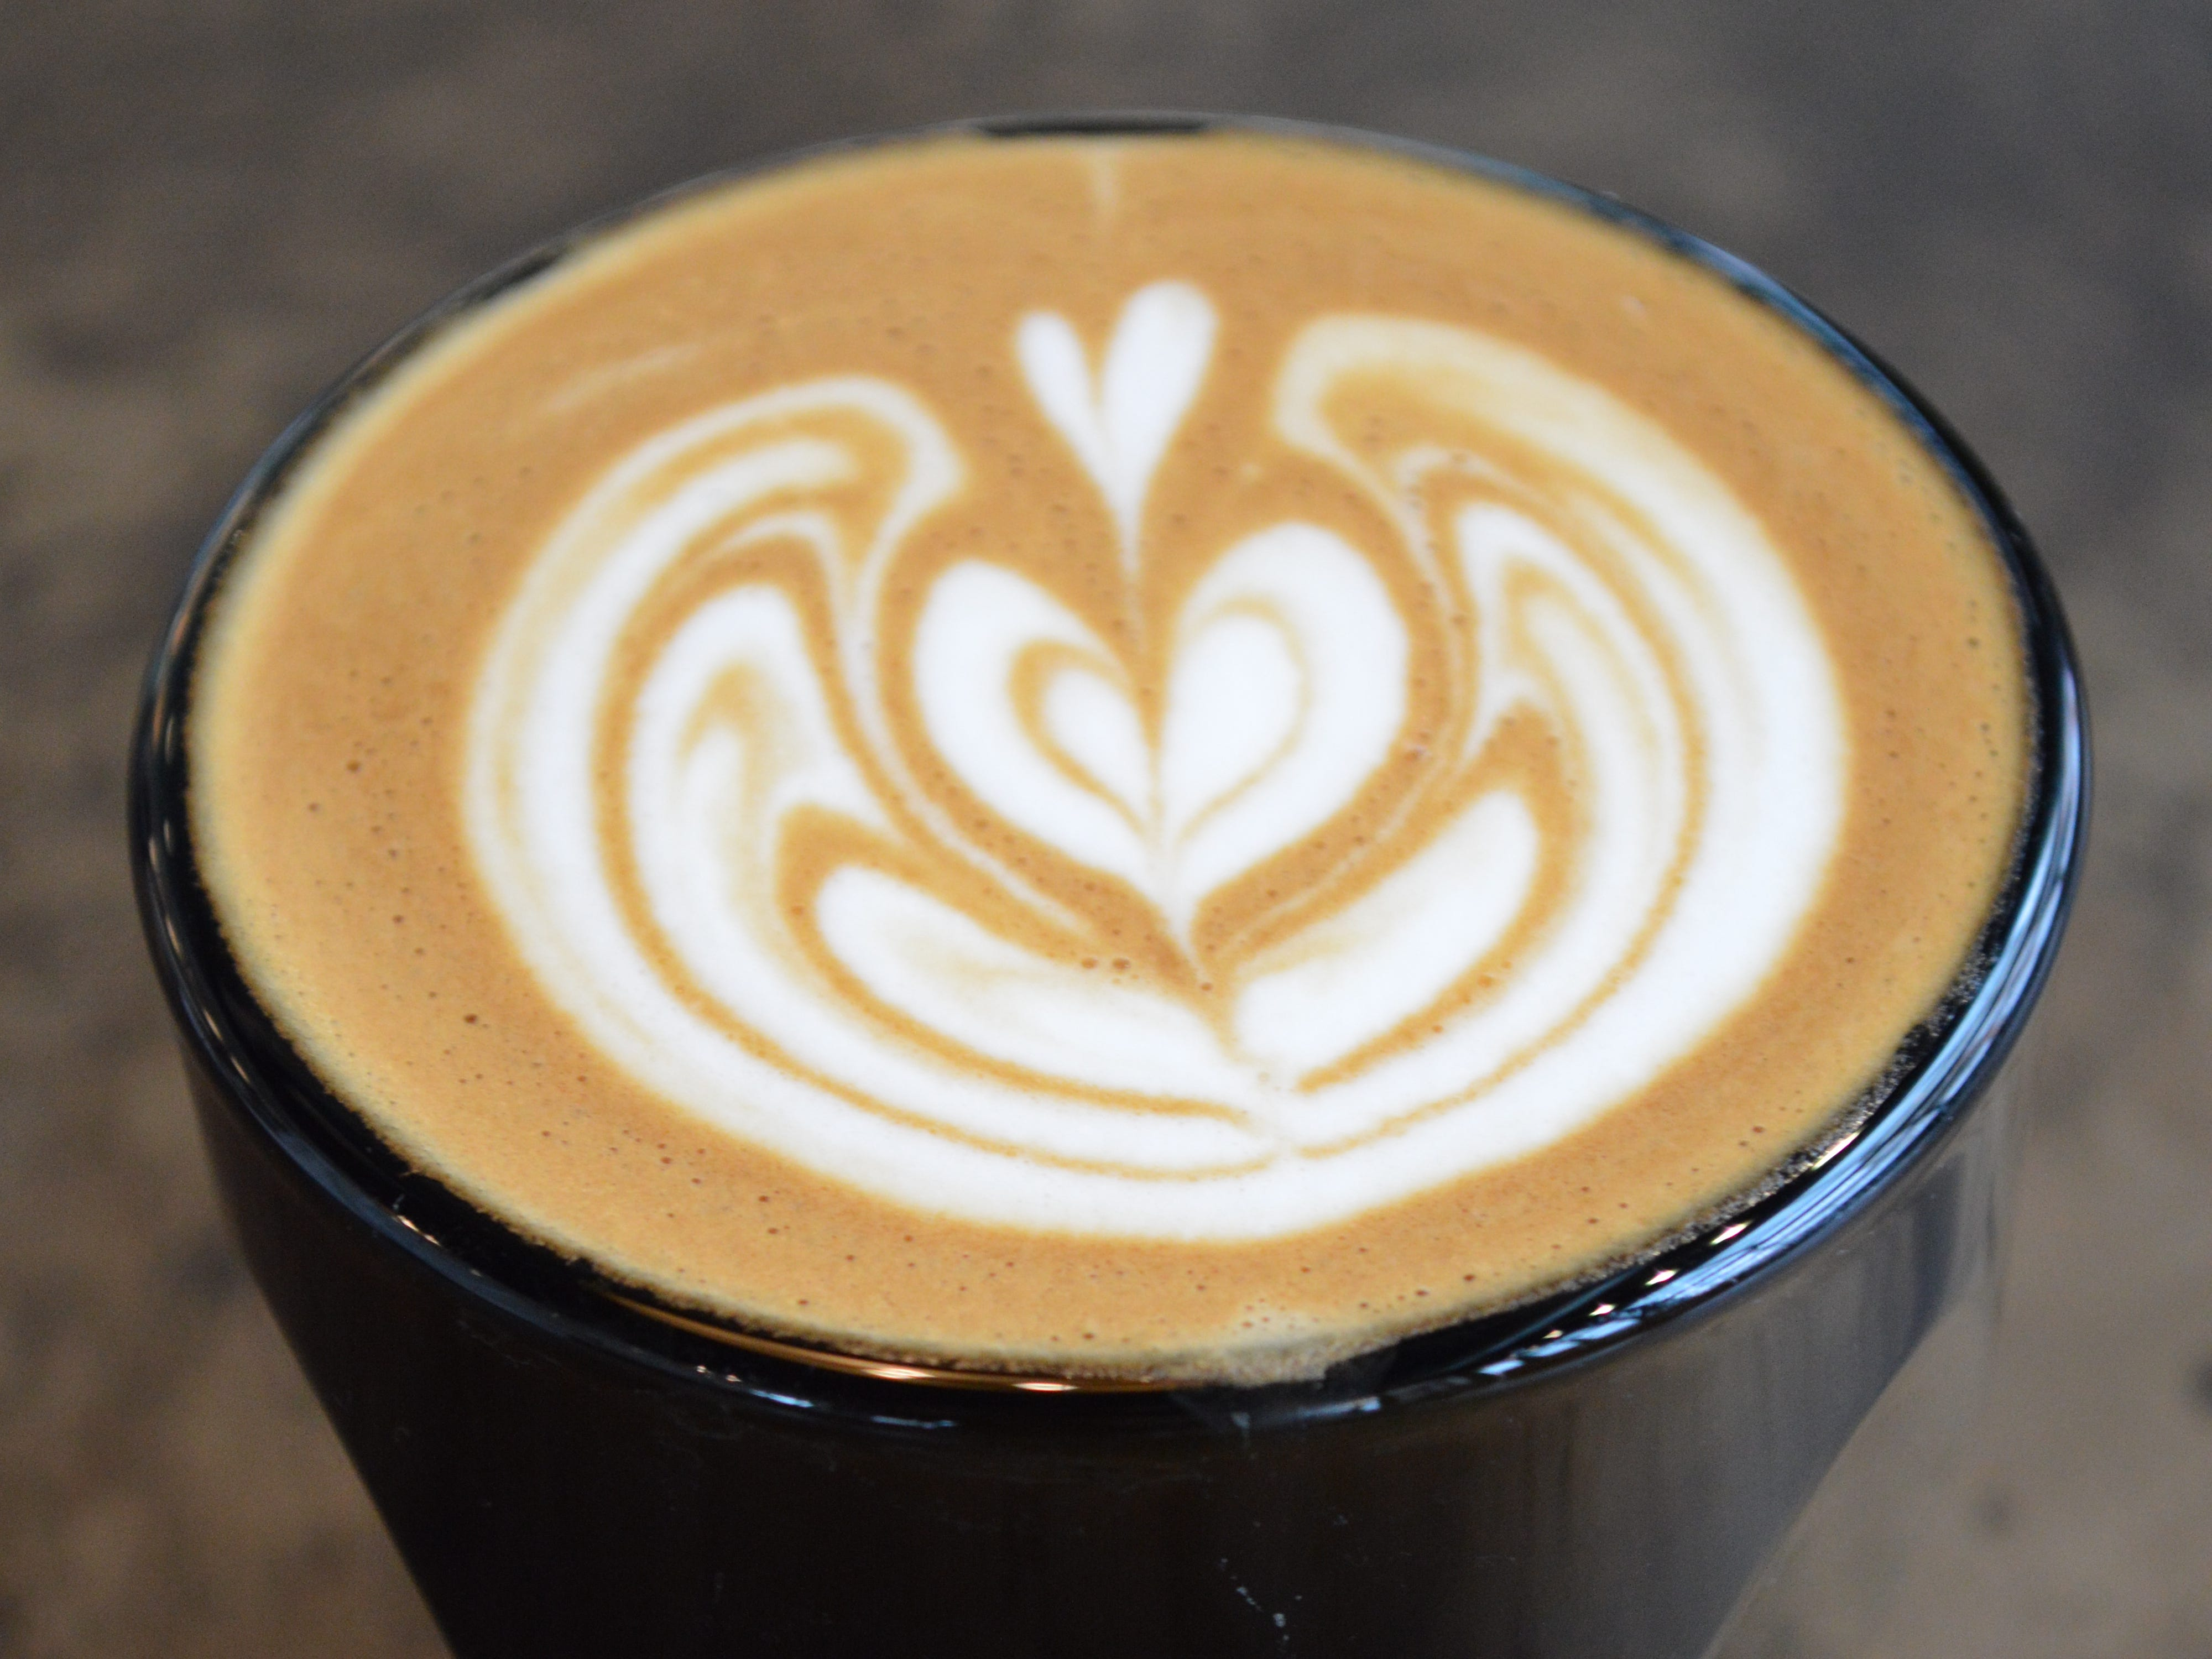 A cortado, which is made with an equal amount of espresso and milk, is $3.59.